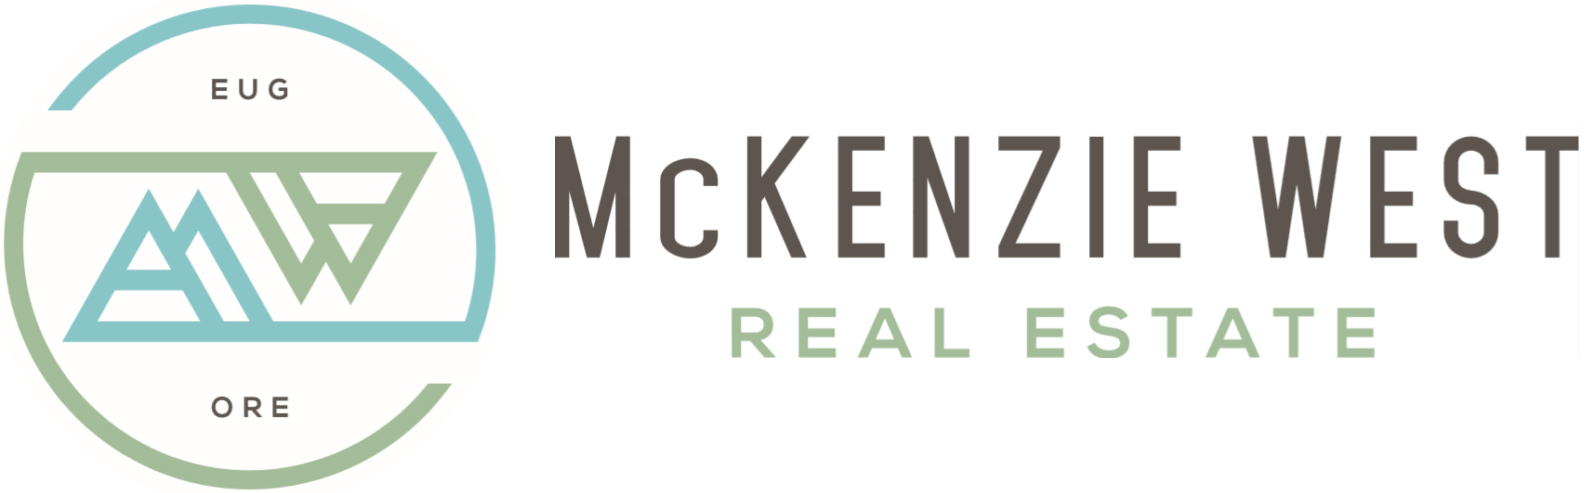 Mckenzie West Real Estate, LLC